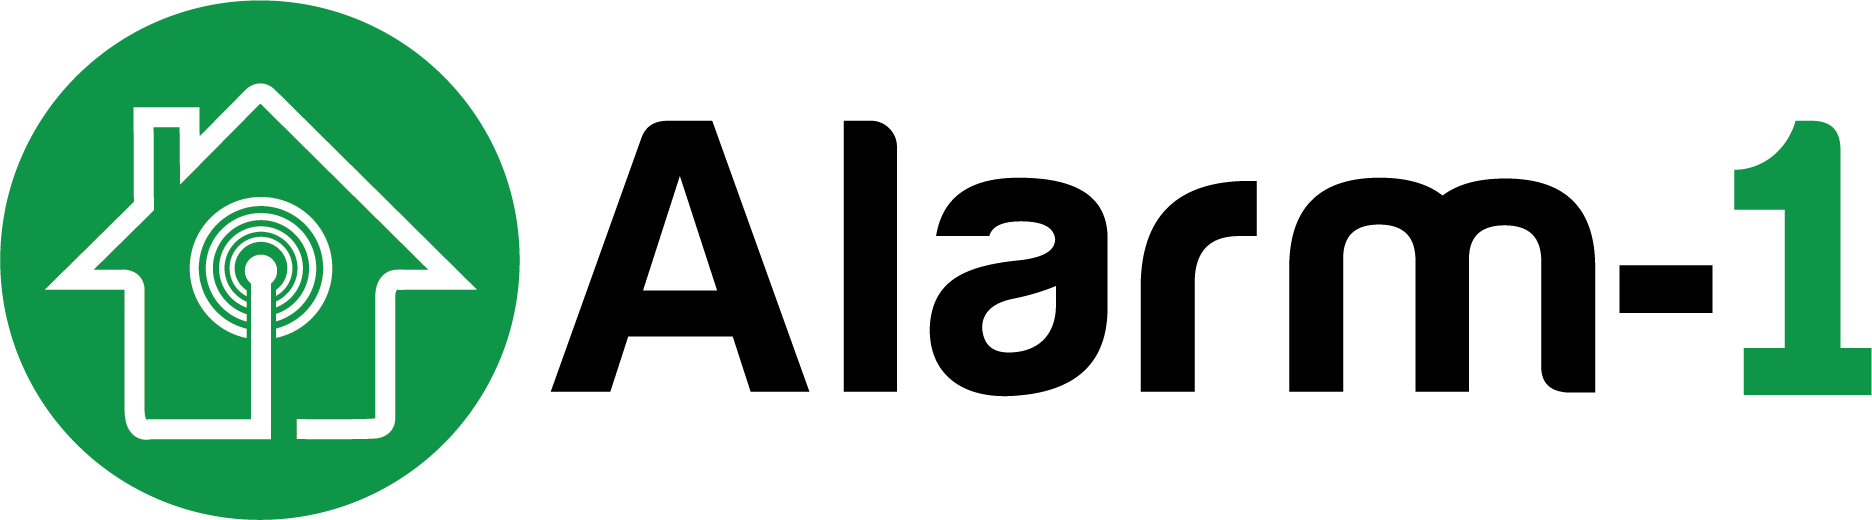 Alarm-1 Security Company